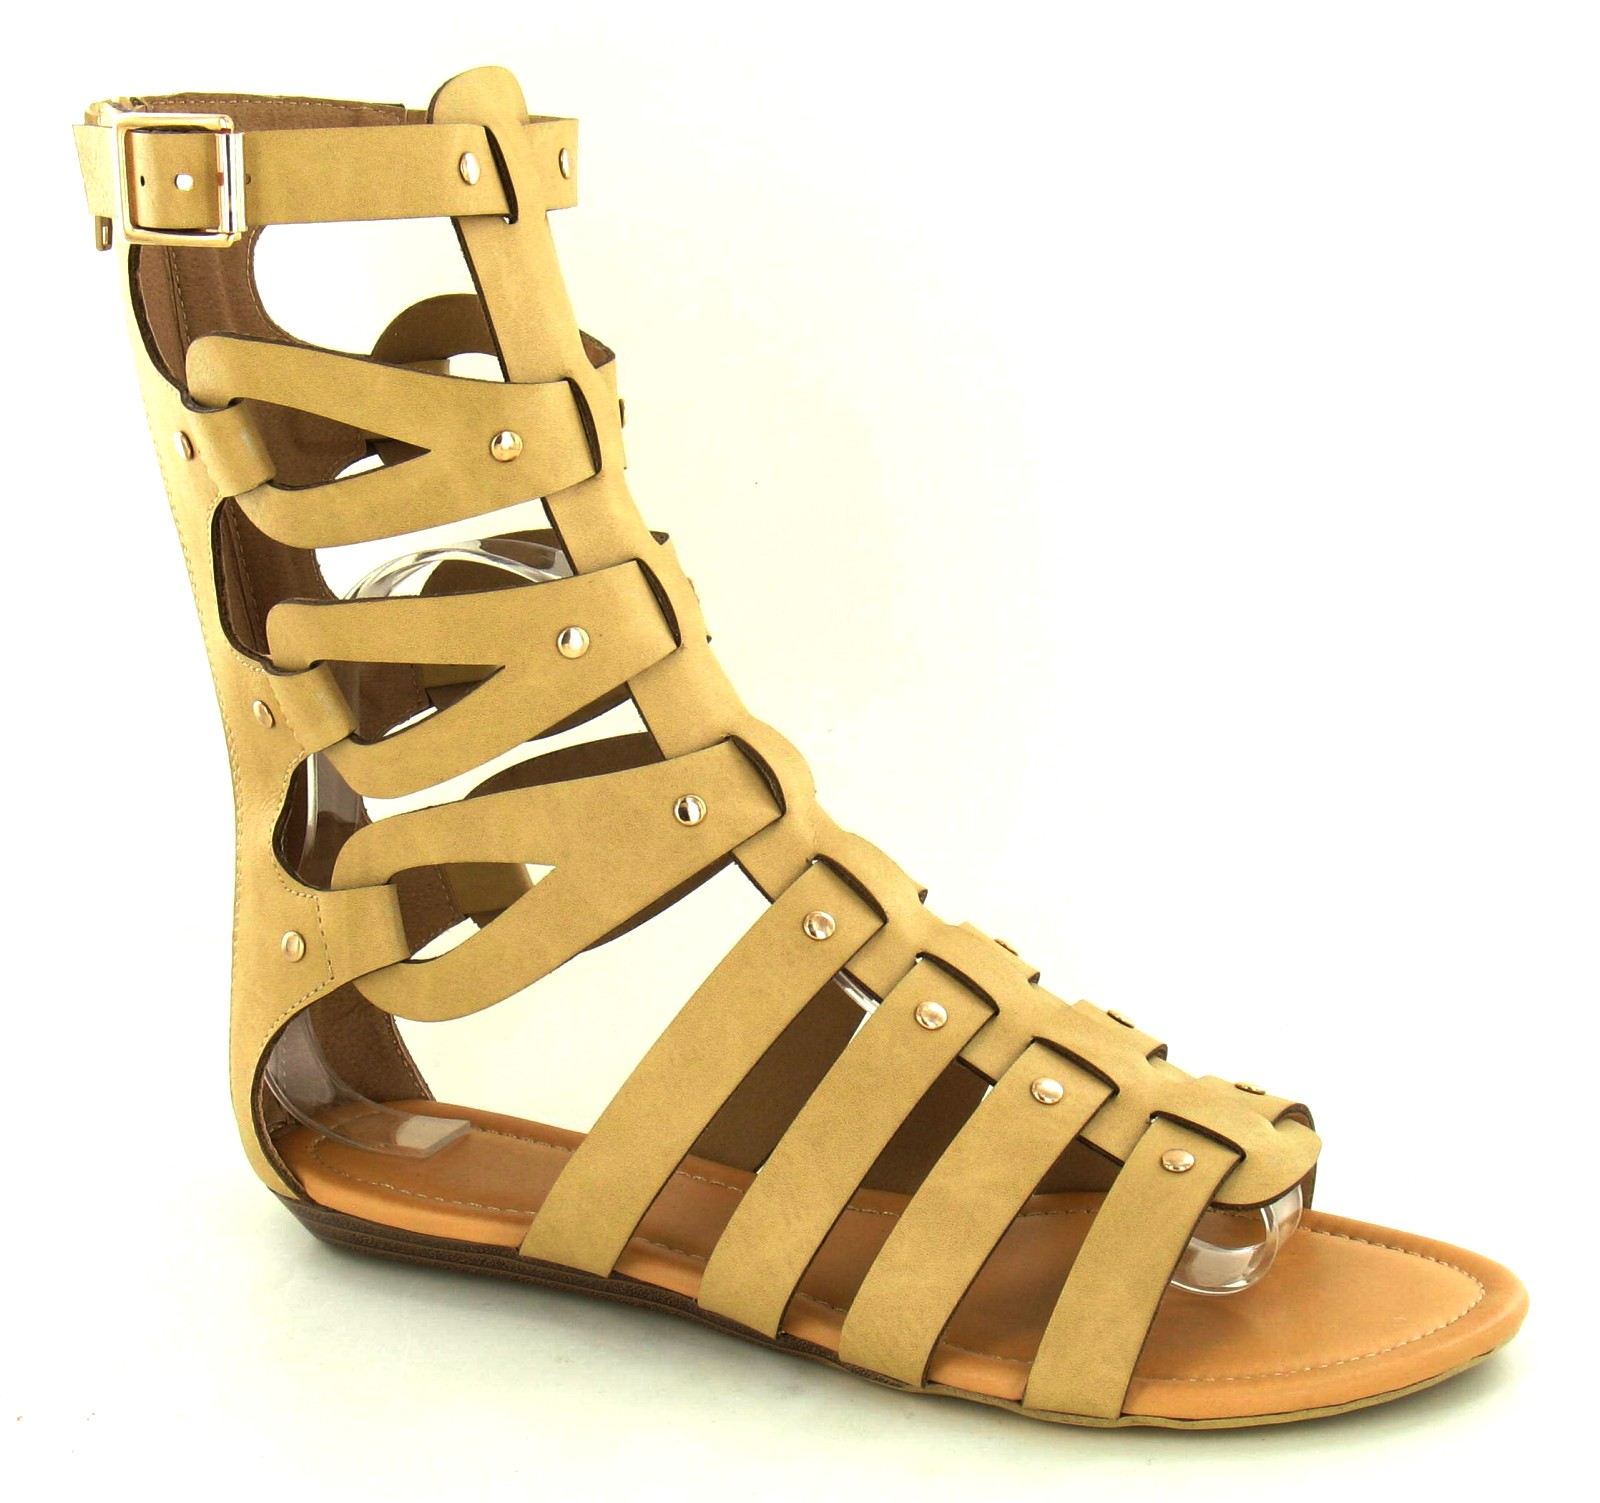 Womens Mid Calf Cut Out Flat Gladiator Sandals Ladies Summer Shoes ... e62a1884d0